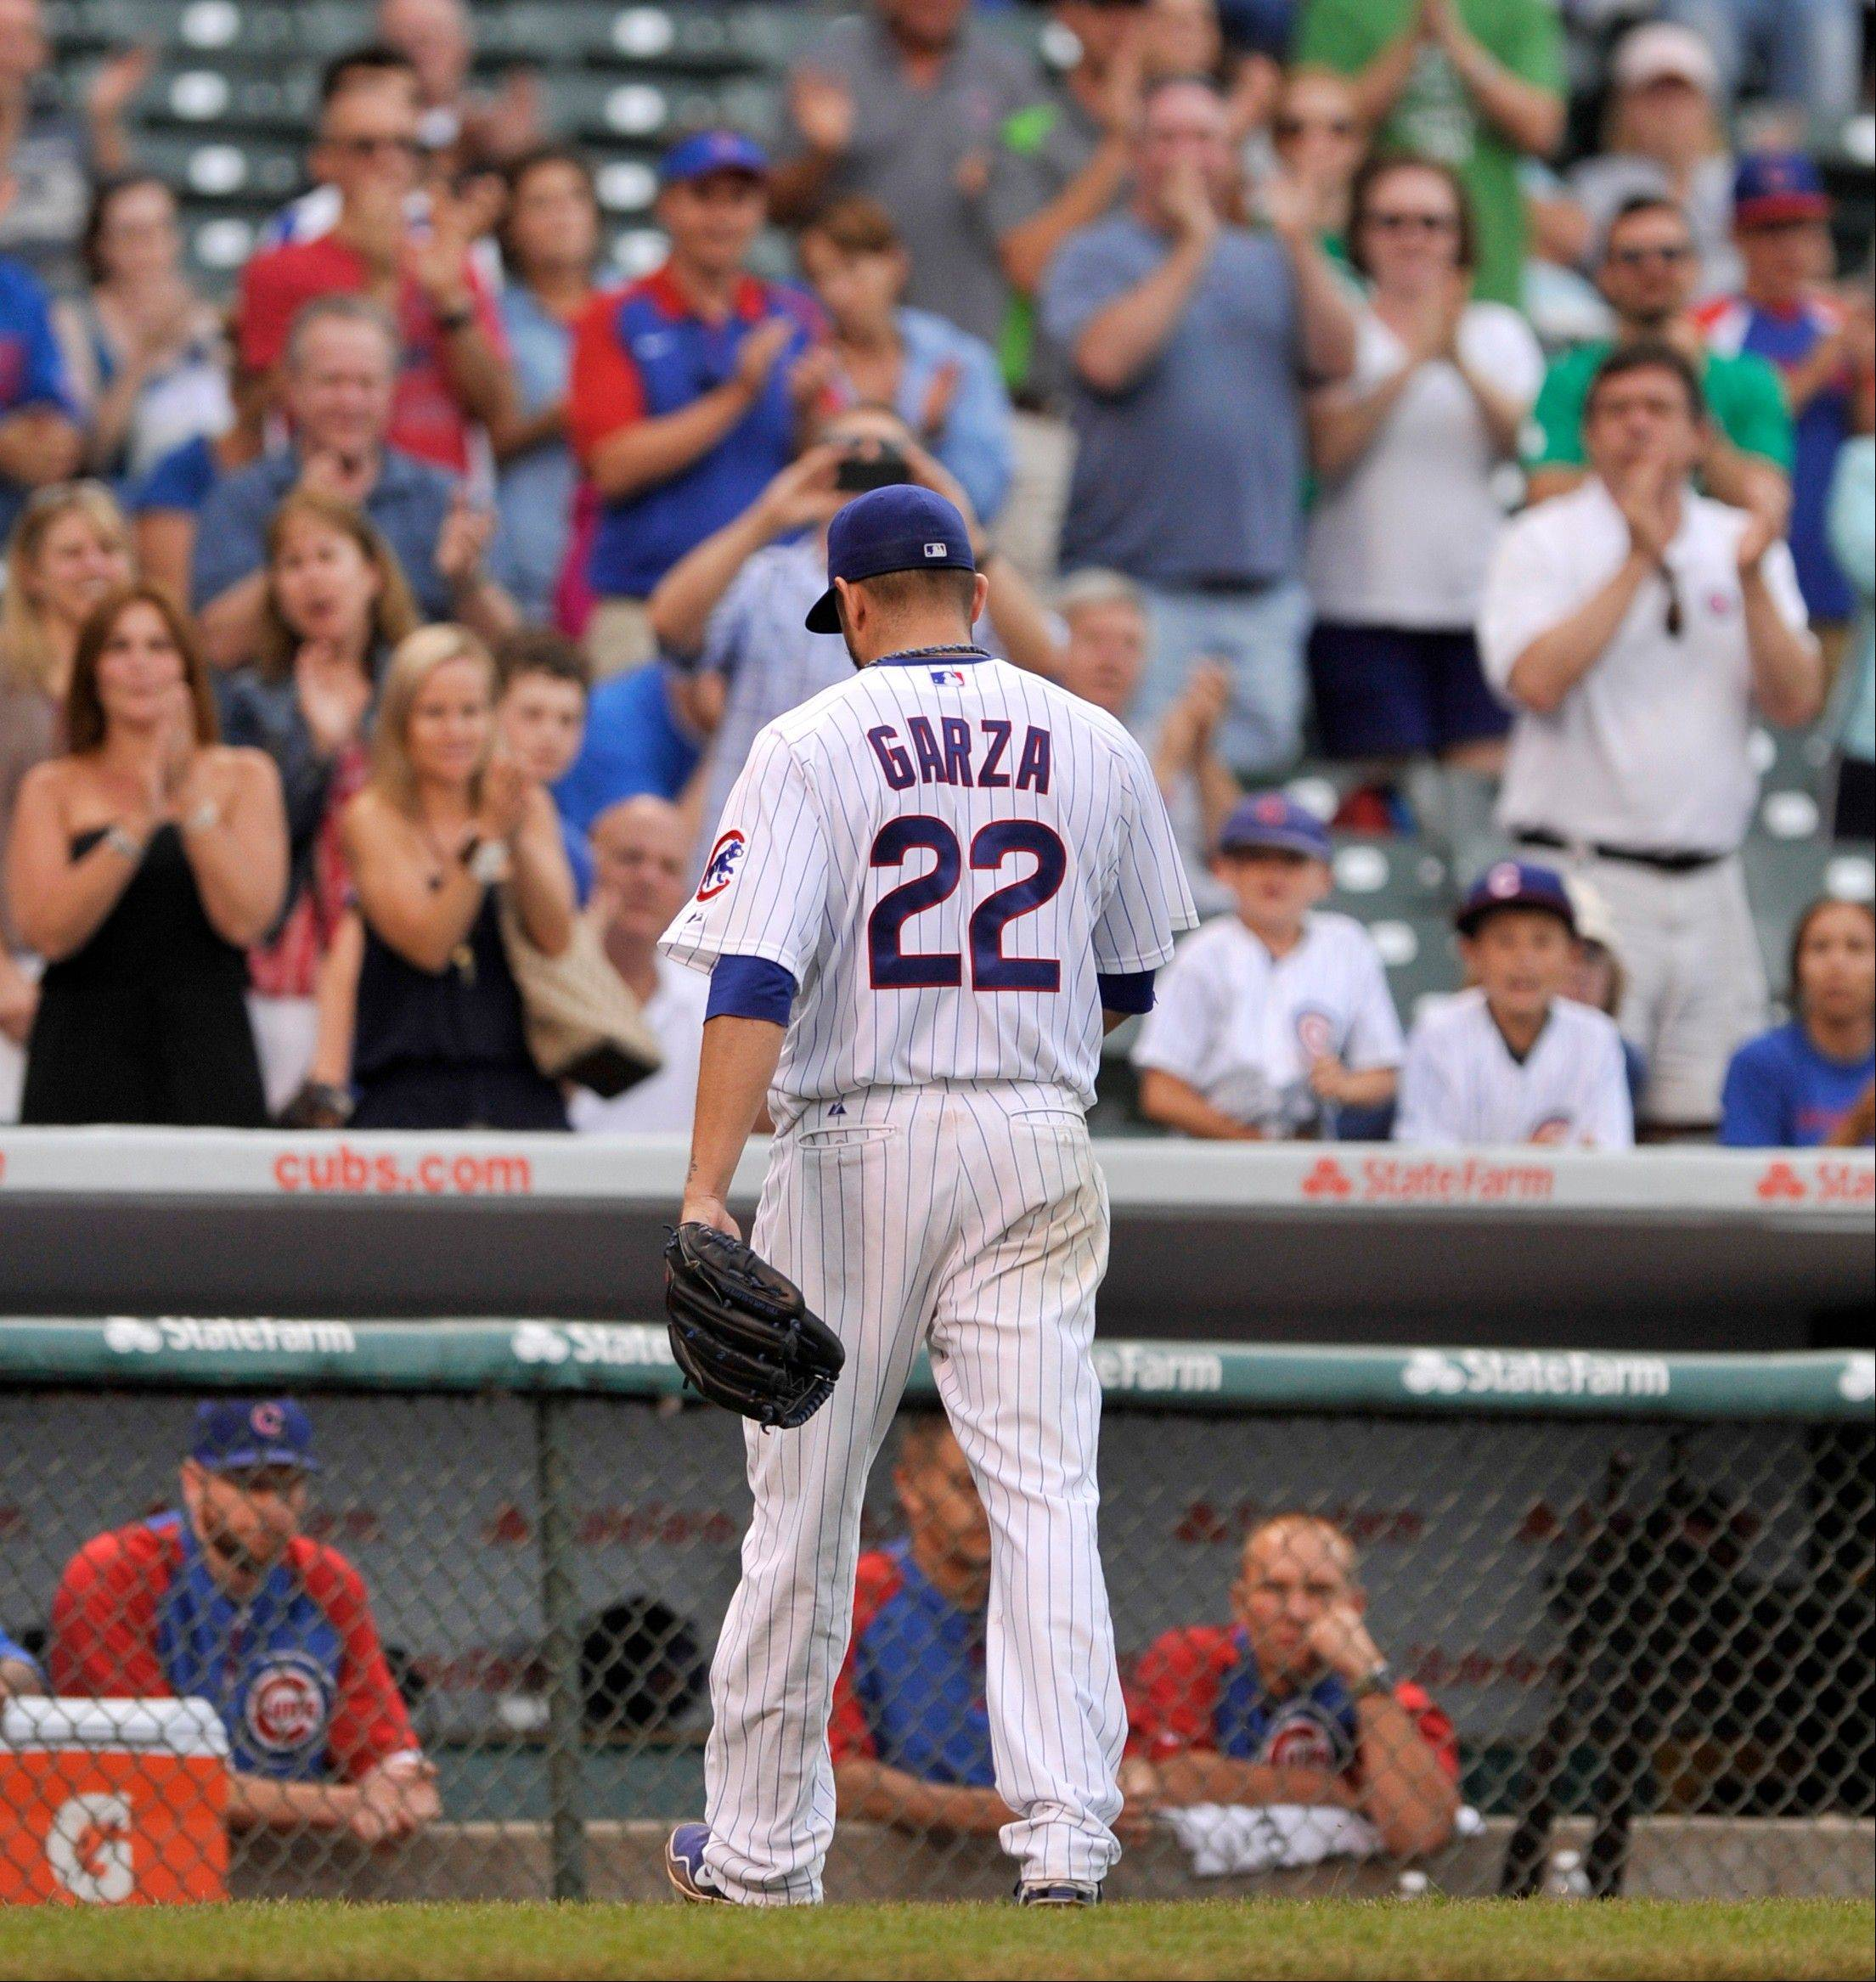 Matt Garza leaves during the ninth inning of a baseball game against the Houston Astros in Chicago, June 21, 2013. Chicago won 3-1.